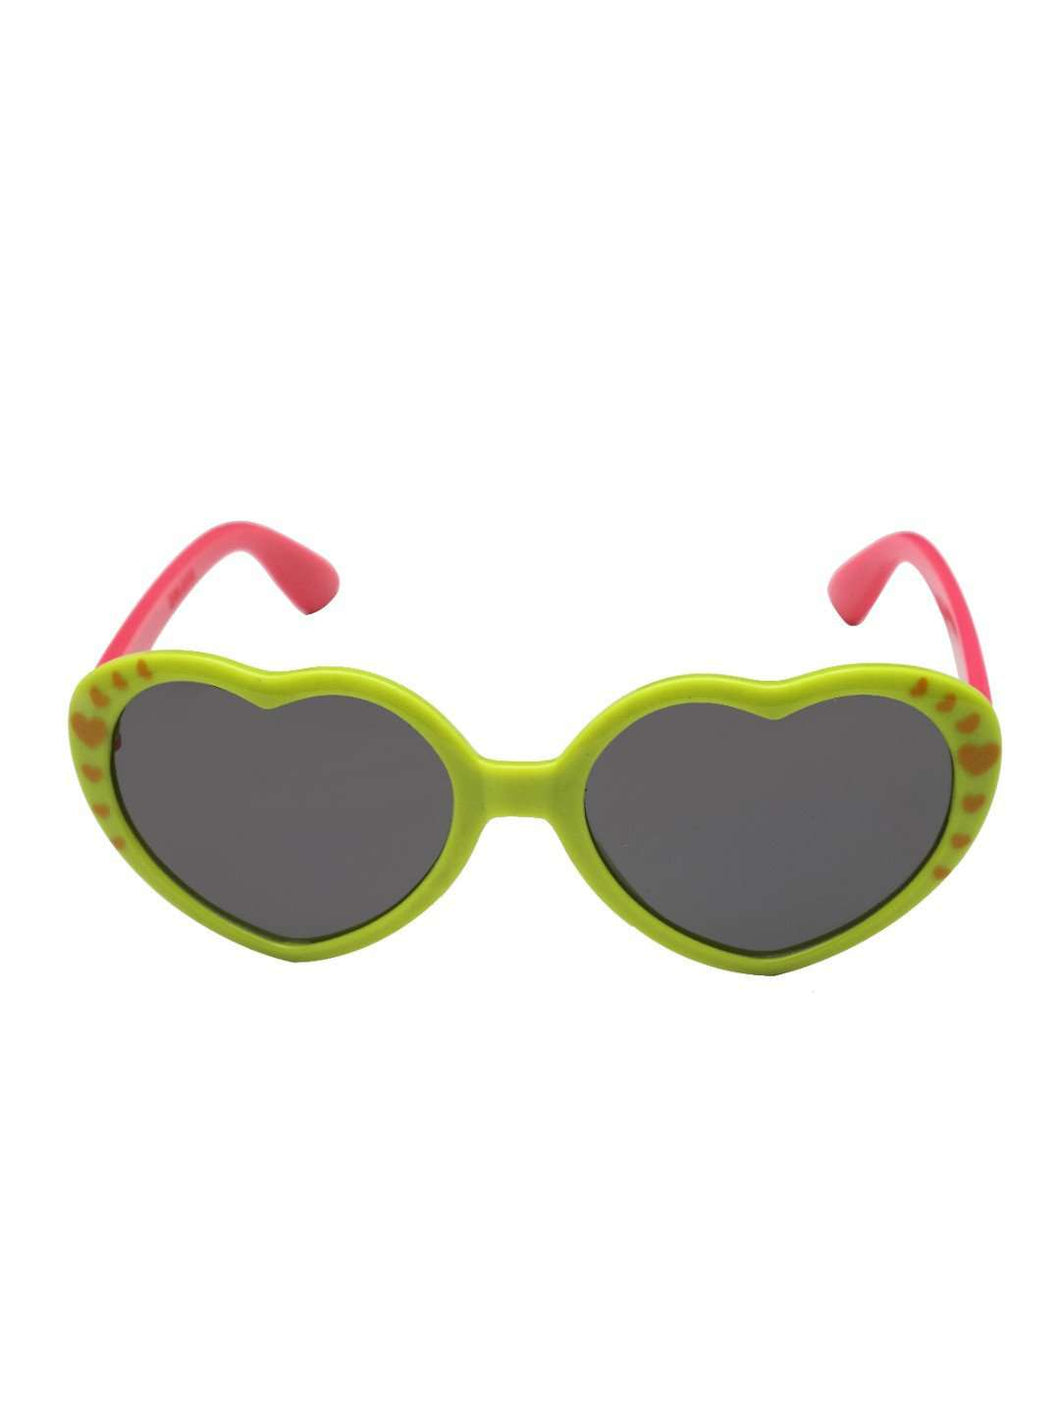 Stol'n Kids Green and Pink Heart Sunglasses - SWHF